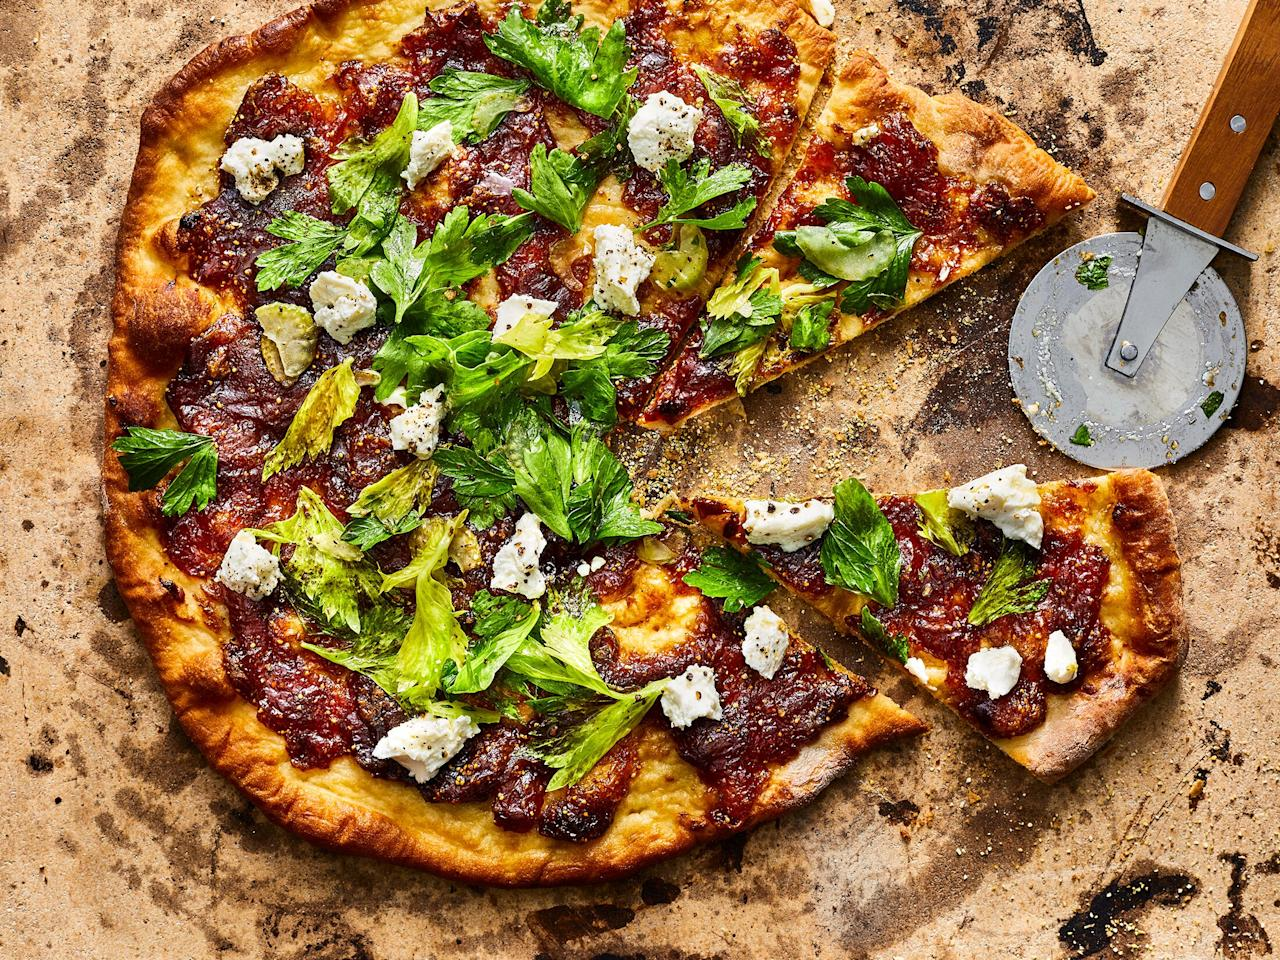 "<p>Using a pizza stone is the key to achieving a delectably crispy crust on this easy flatbread. While we baked ours in the oven, you could easily heat your pizza stone on the grill if you'd rather not heat up the kitchen. Featuring our easy<a href=""https://www.myrecipes.com/recipe/fresh-fig-jam""> fig jam</a>, along with tangy goat cheese and vibrant celery and herb salad, the pizzas can serve four as a light summer entree or more as an elegant appetizer. If you want to bulk the flatbreads up with a little extra protein, try adding sliced prosciutto or shredded rotisserie chicken. </p> <p><a href=""https://www.myrecipes.com/recipe/fig-jam-goat-cheese-flatbread"">Fig Jam and Goat Cheese Flatbread Recipe</a></p>"